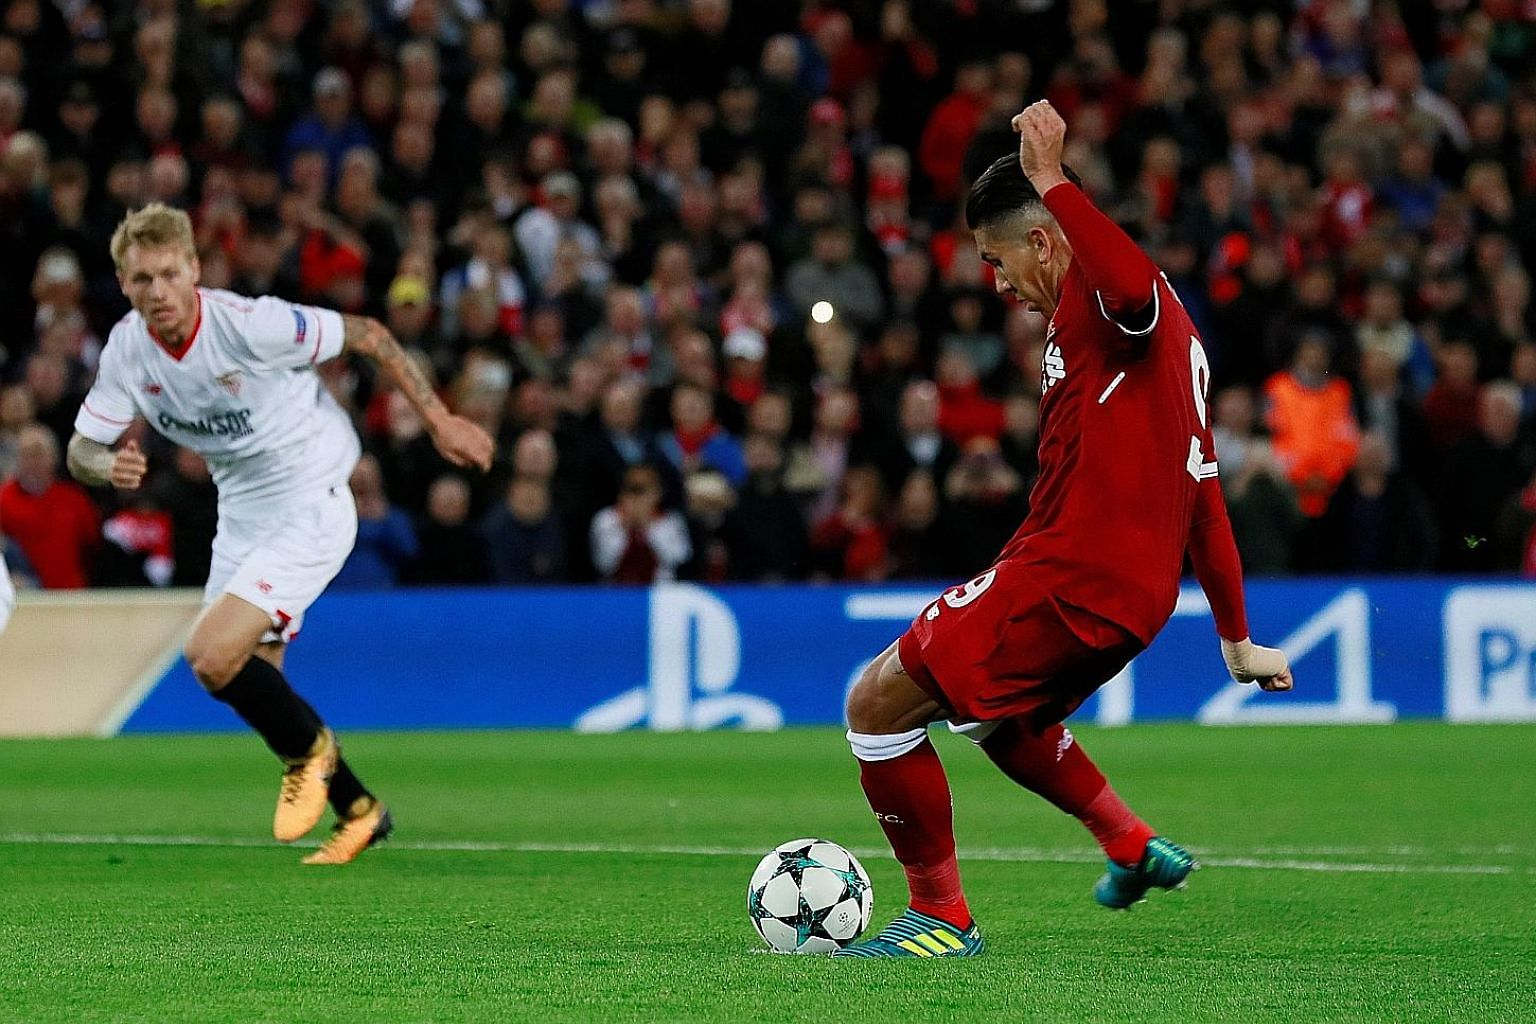 Roberto Firmino attempting to put Liverpool 3-1 up from a penalty just before half-time but his shot struck the post. It proved costly as Sevilla equalised late to rescue a point.